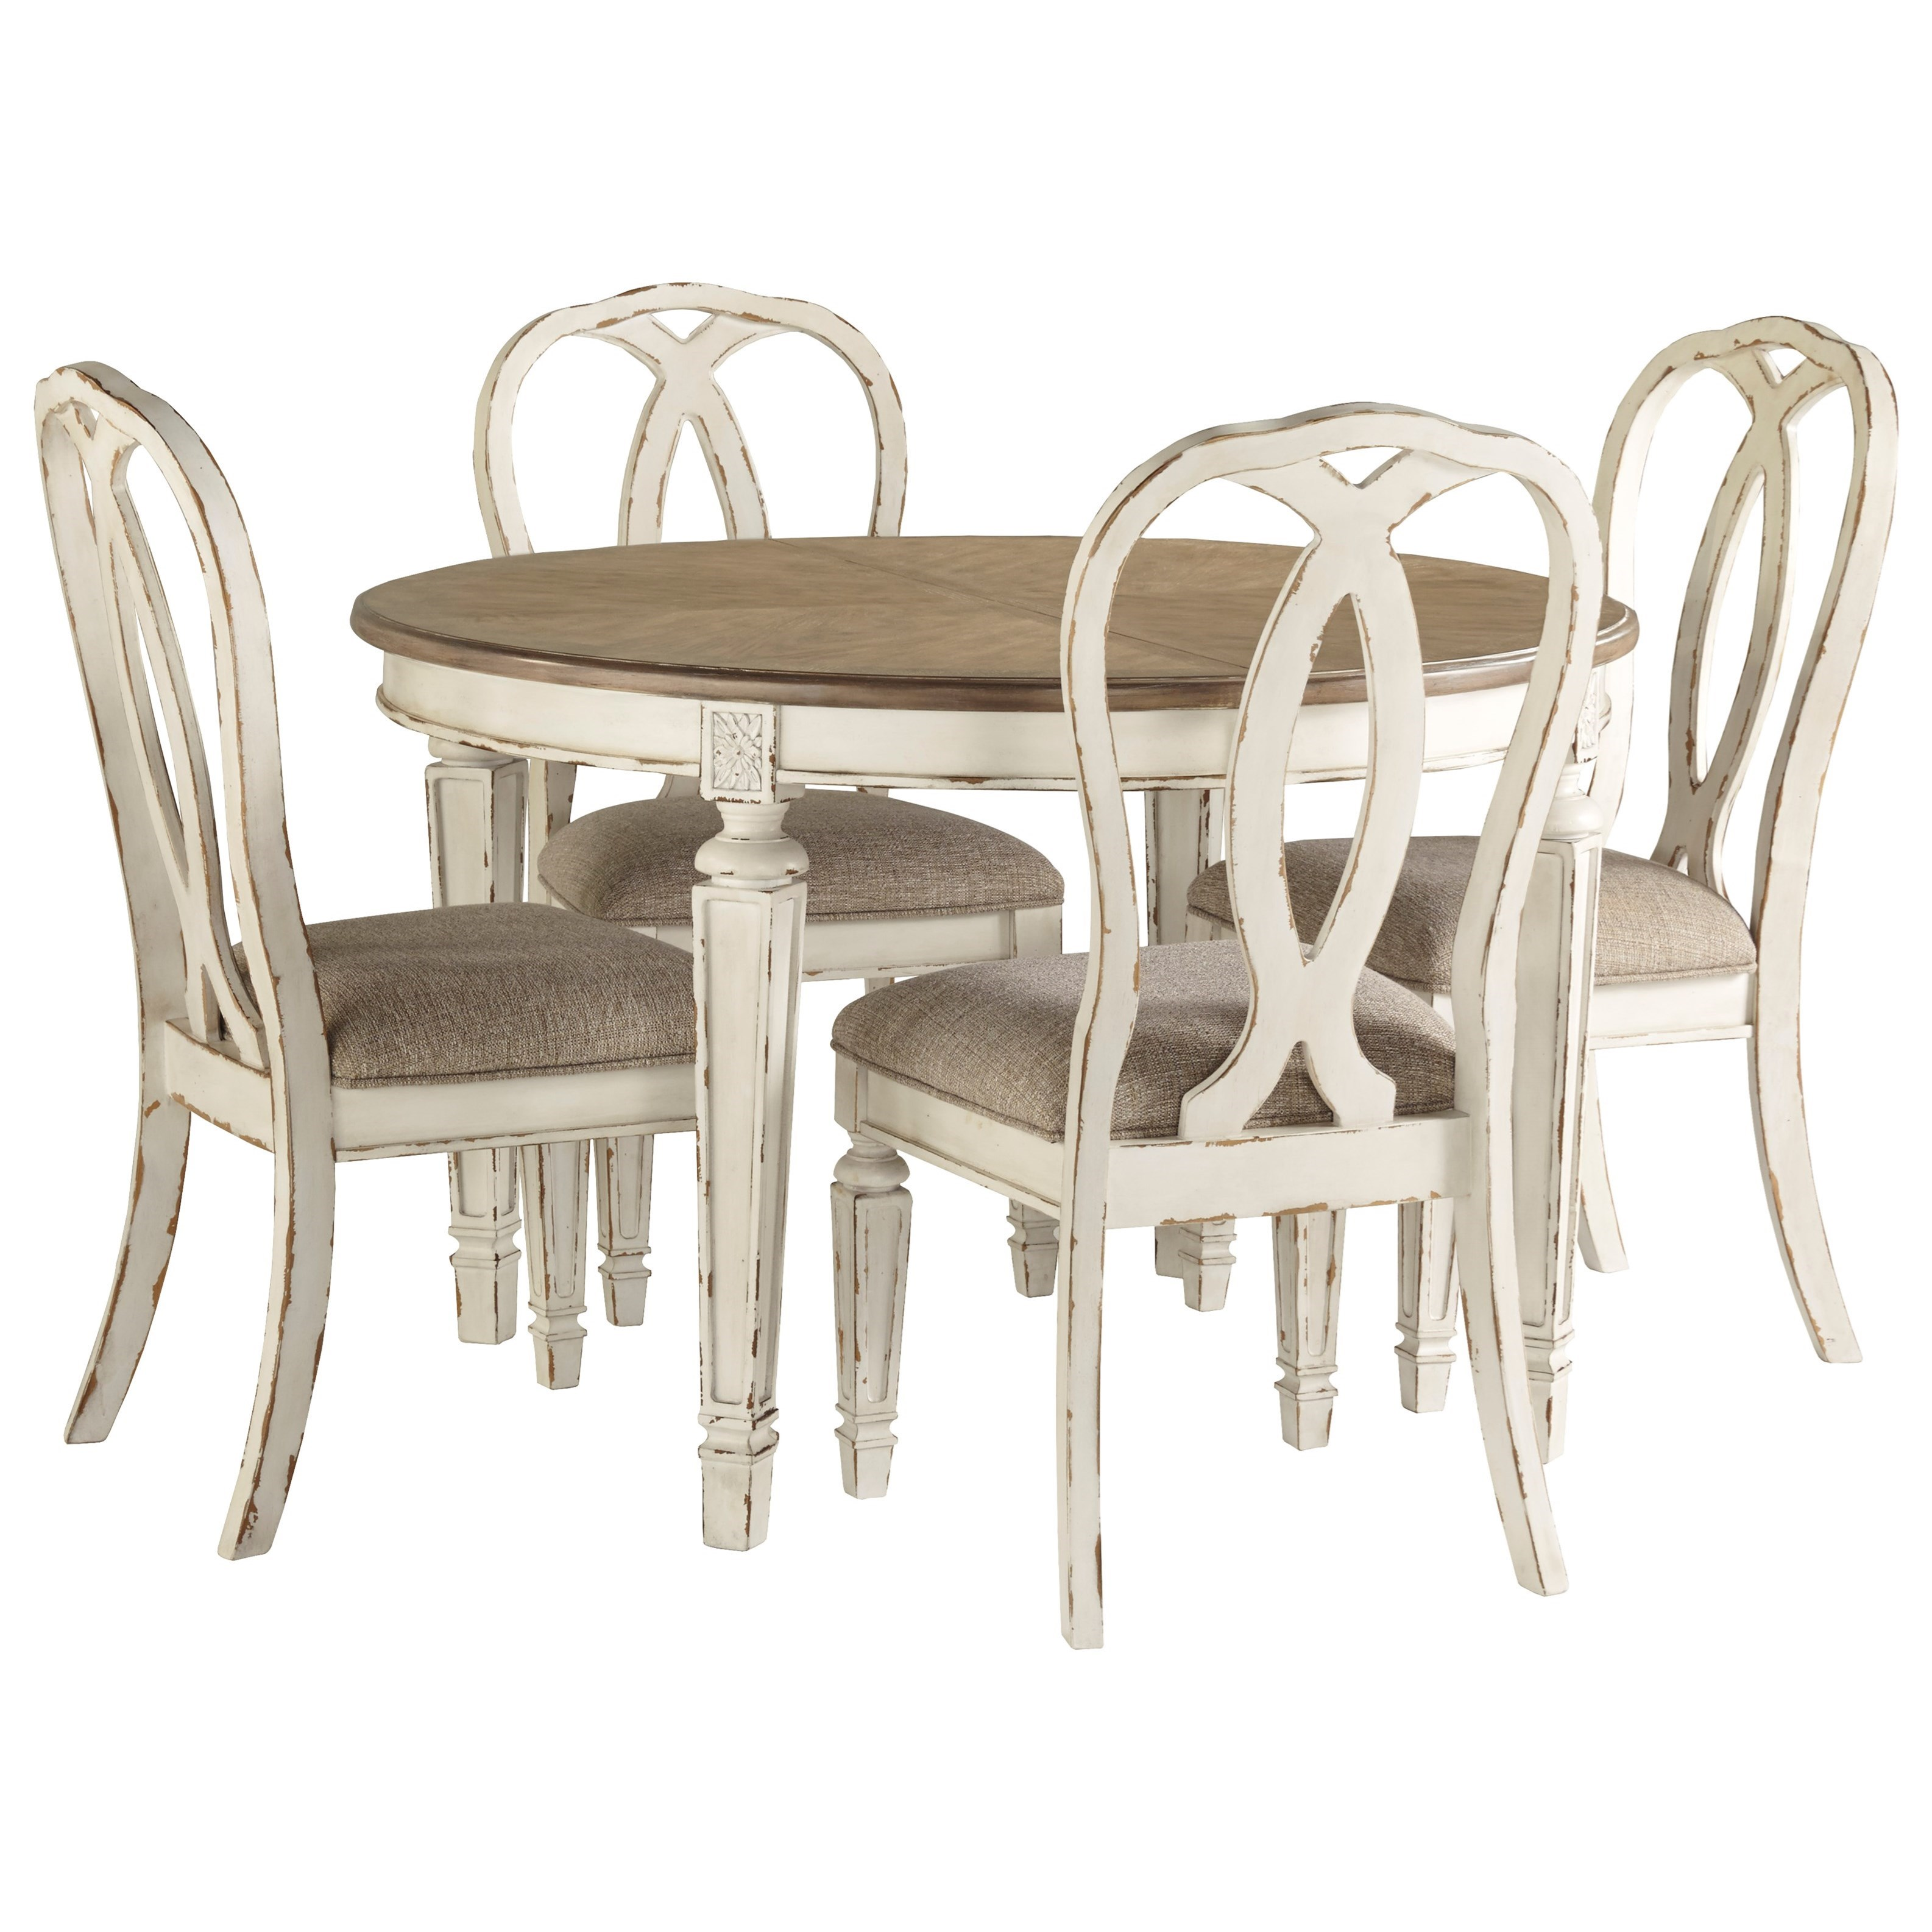 Signature Design By Ashley Realyn 5 Piece Round Table And Chair Set Royal Furniture Dining 5 Piece Sets